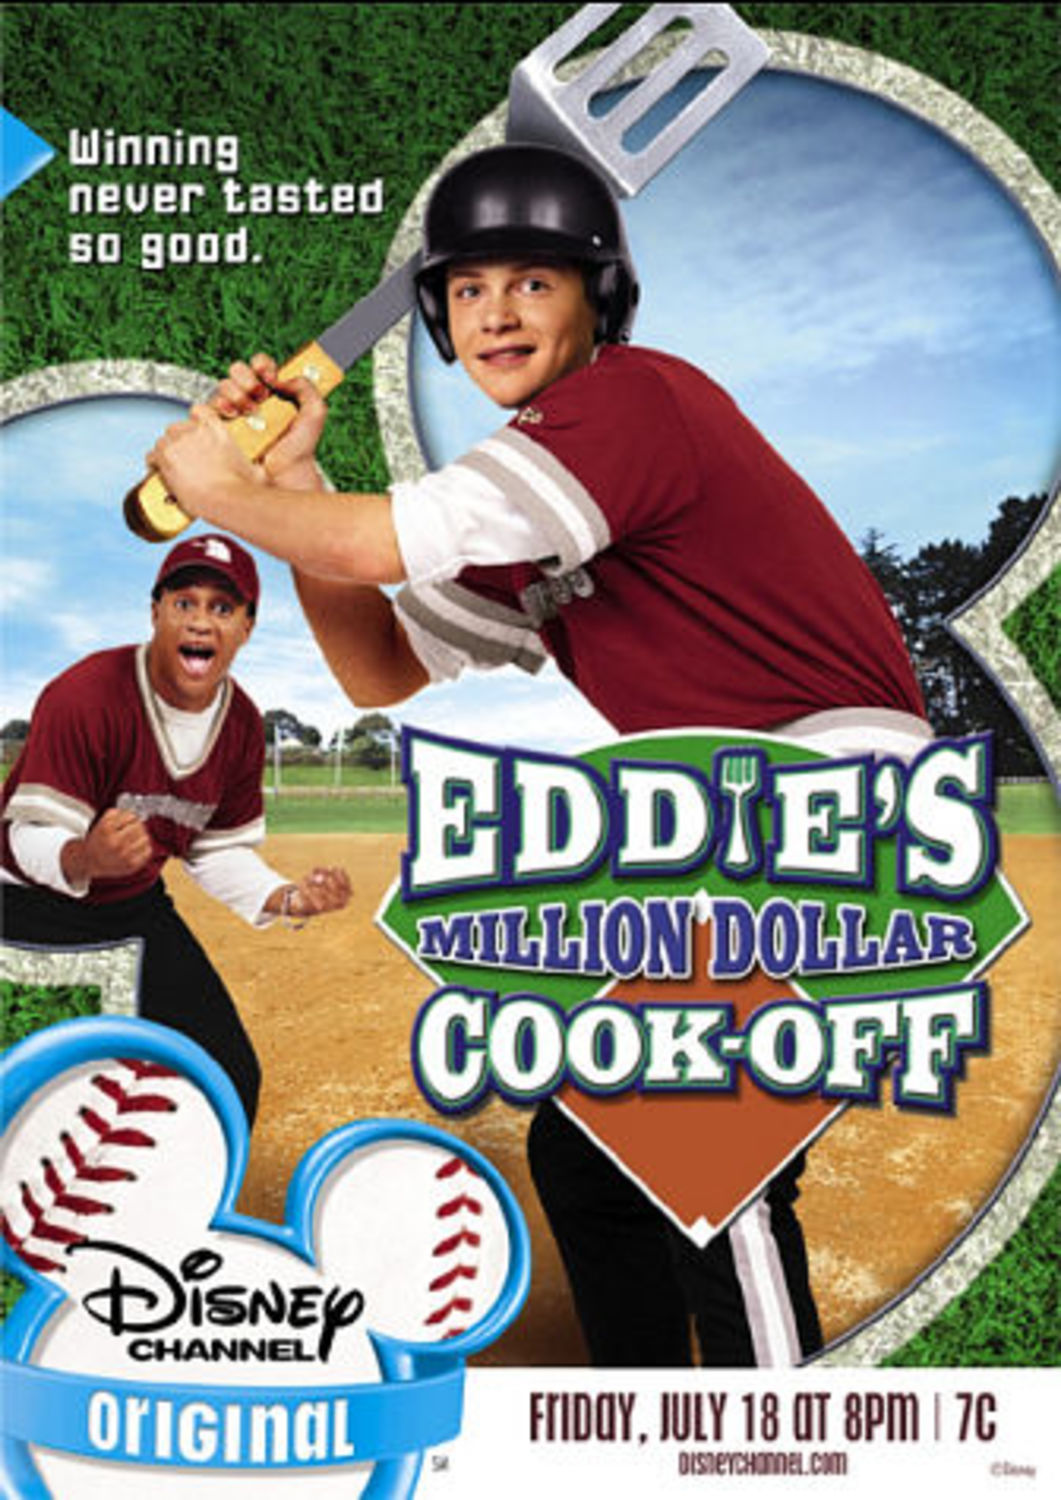 Affiche poster equipe chef eddie cook off million dollar disney channel